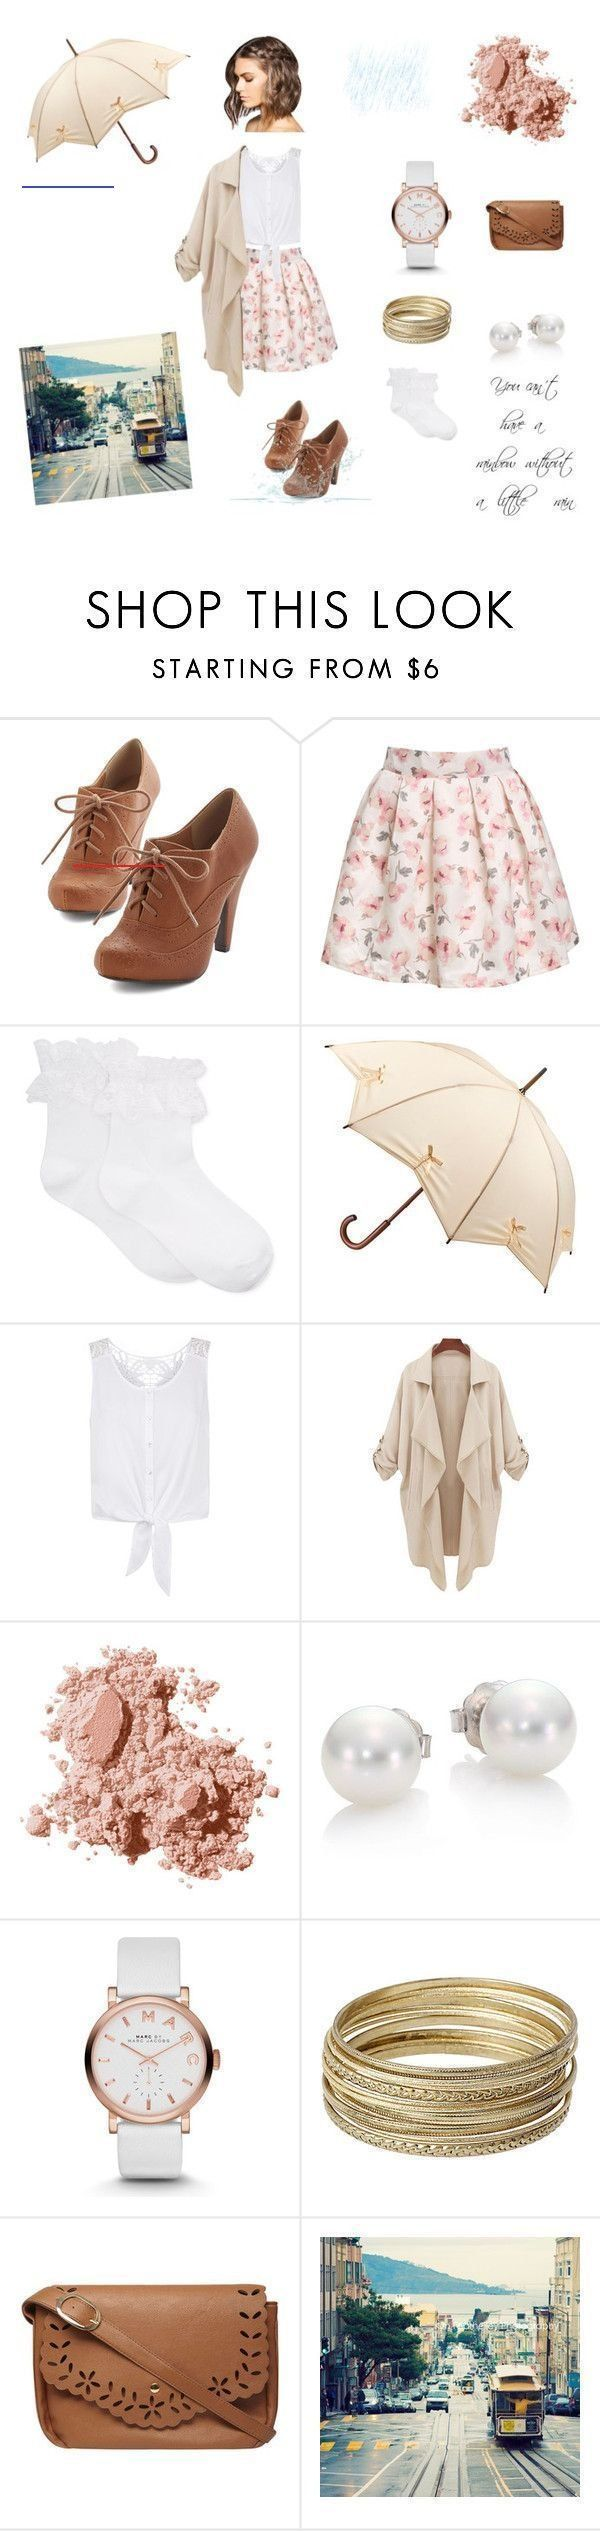 Cute outfit for a rainy summer day by canthelpit  liked on Polyvore featuri Base #rainydayoutfitforwork